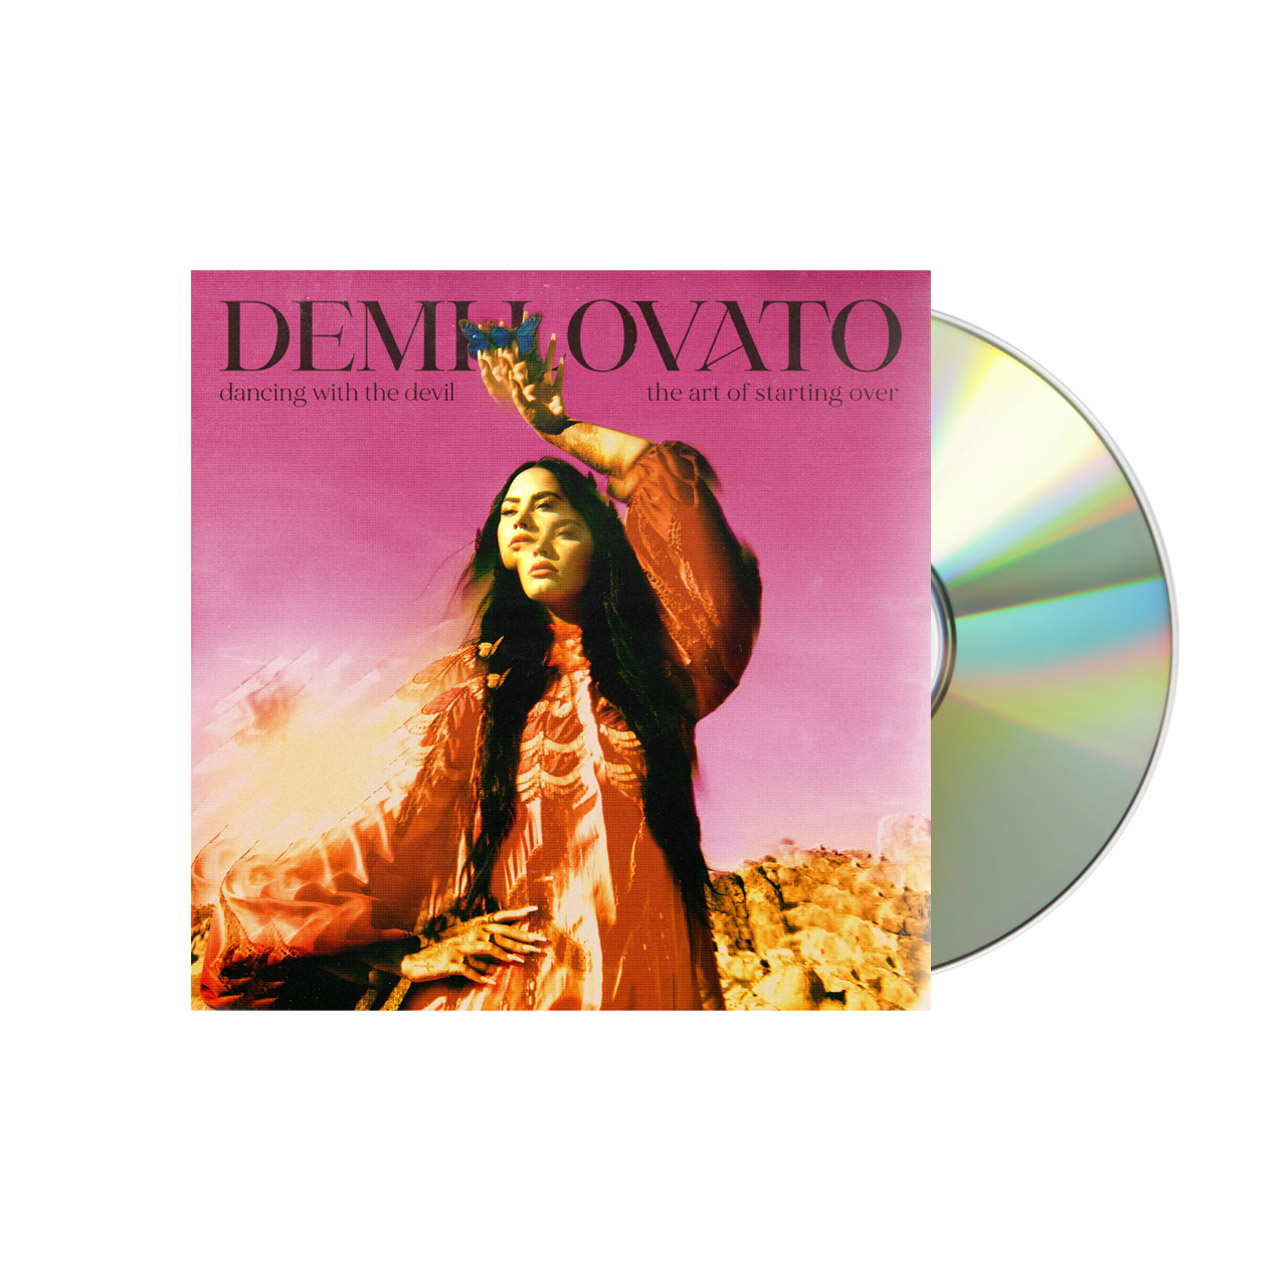 DEMI LOVATO Dancing With The Devil… The Art of Starting Over Cover 2 CD